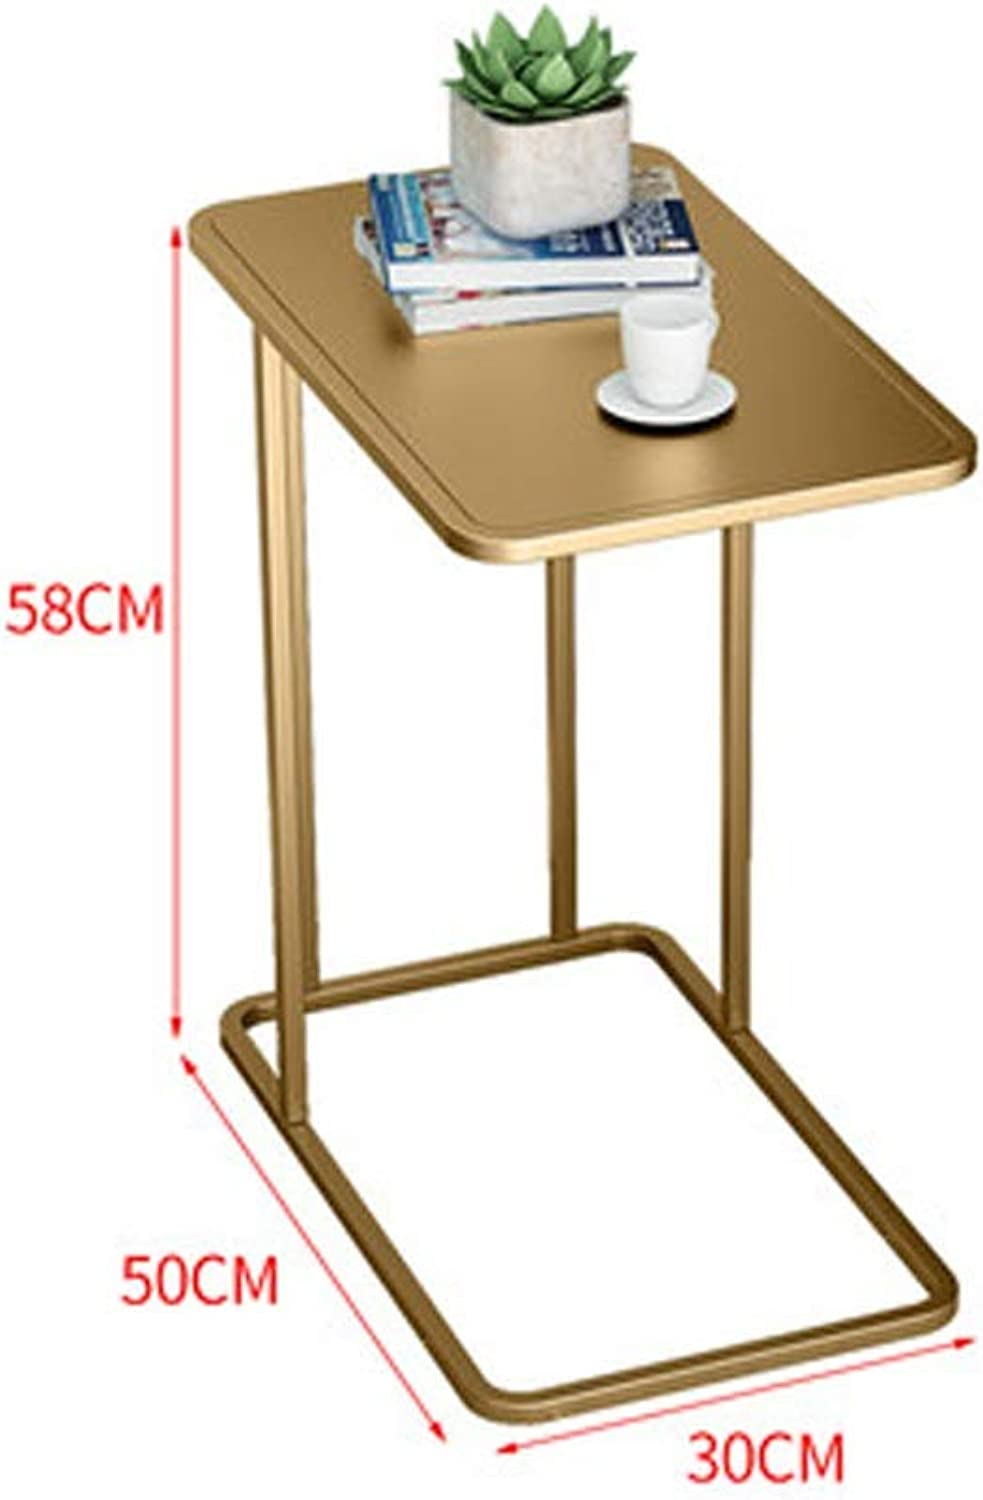 AINIYF Nordic Ins Small Coffee Table Simple Square Table Sofa Side Side Cabinets Living Room Corner Side Table Bedroom Bed Table 19.7x11.8x22.8inches (color   Metallic)